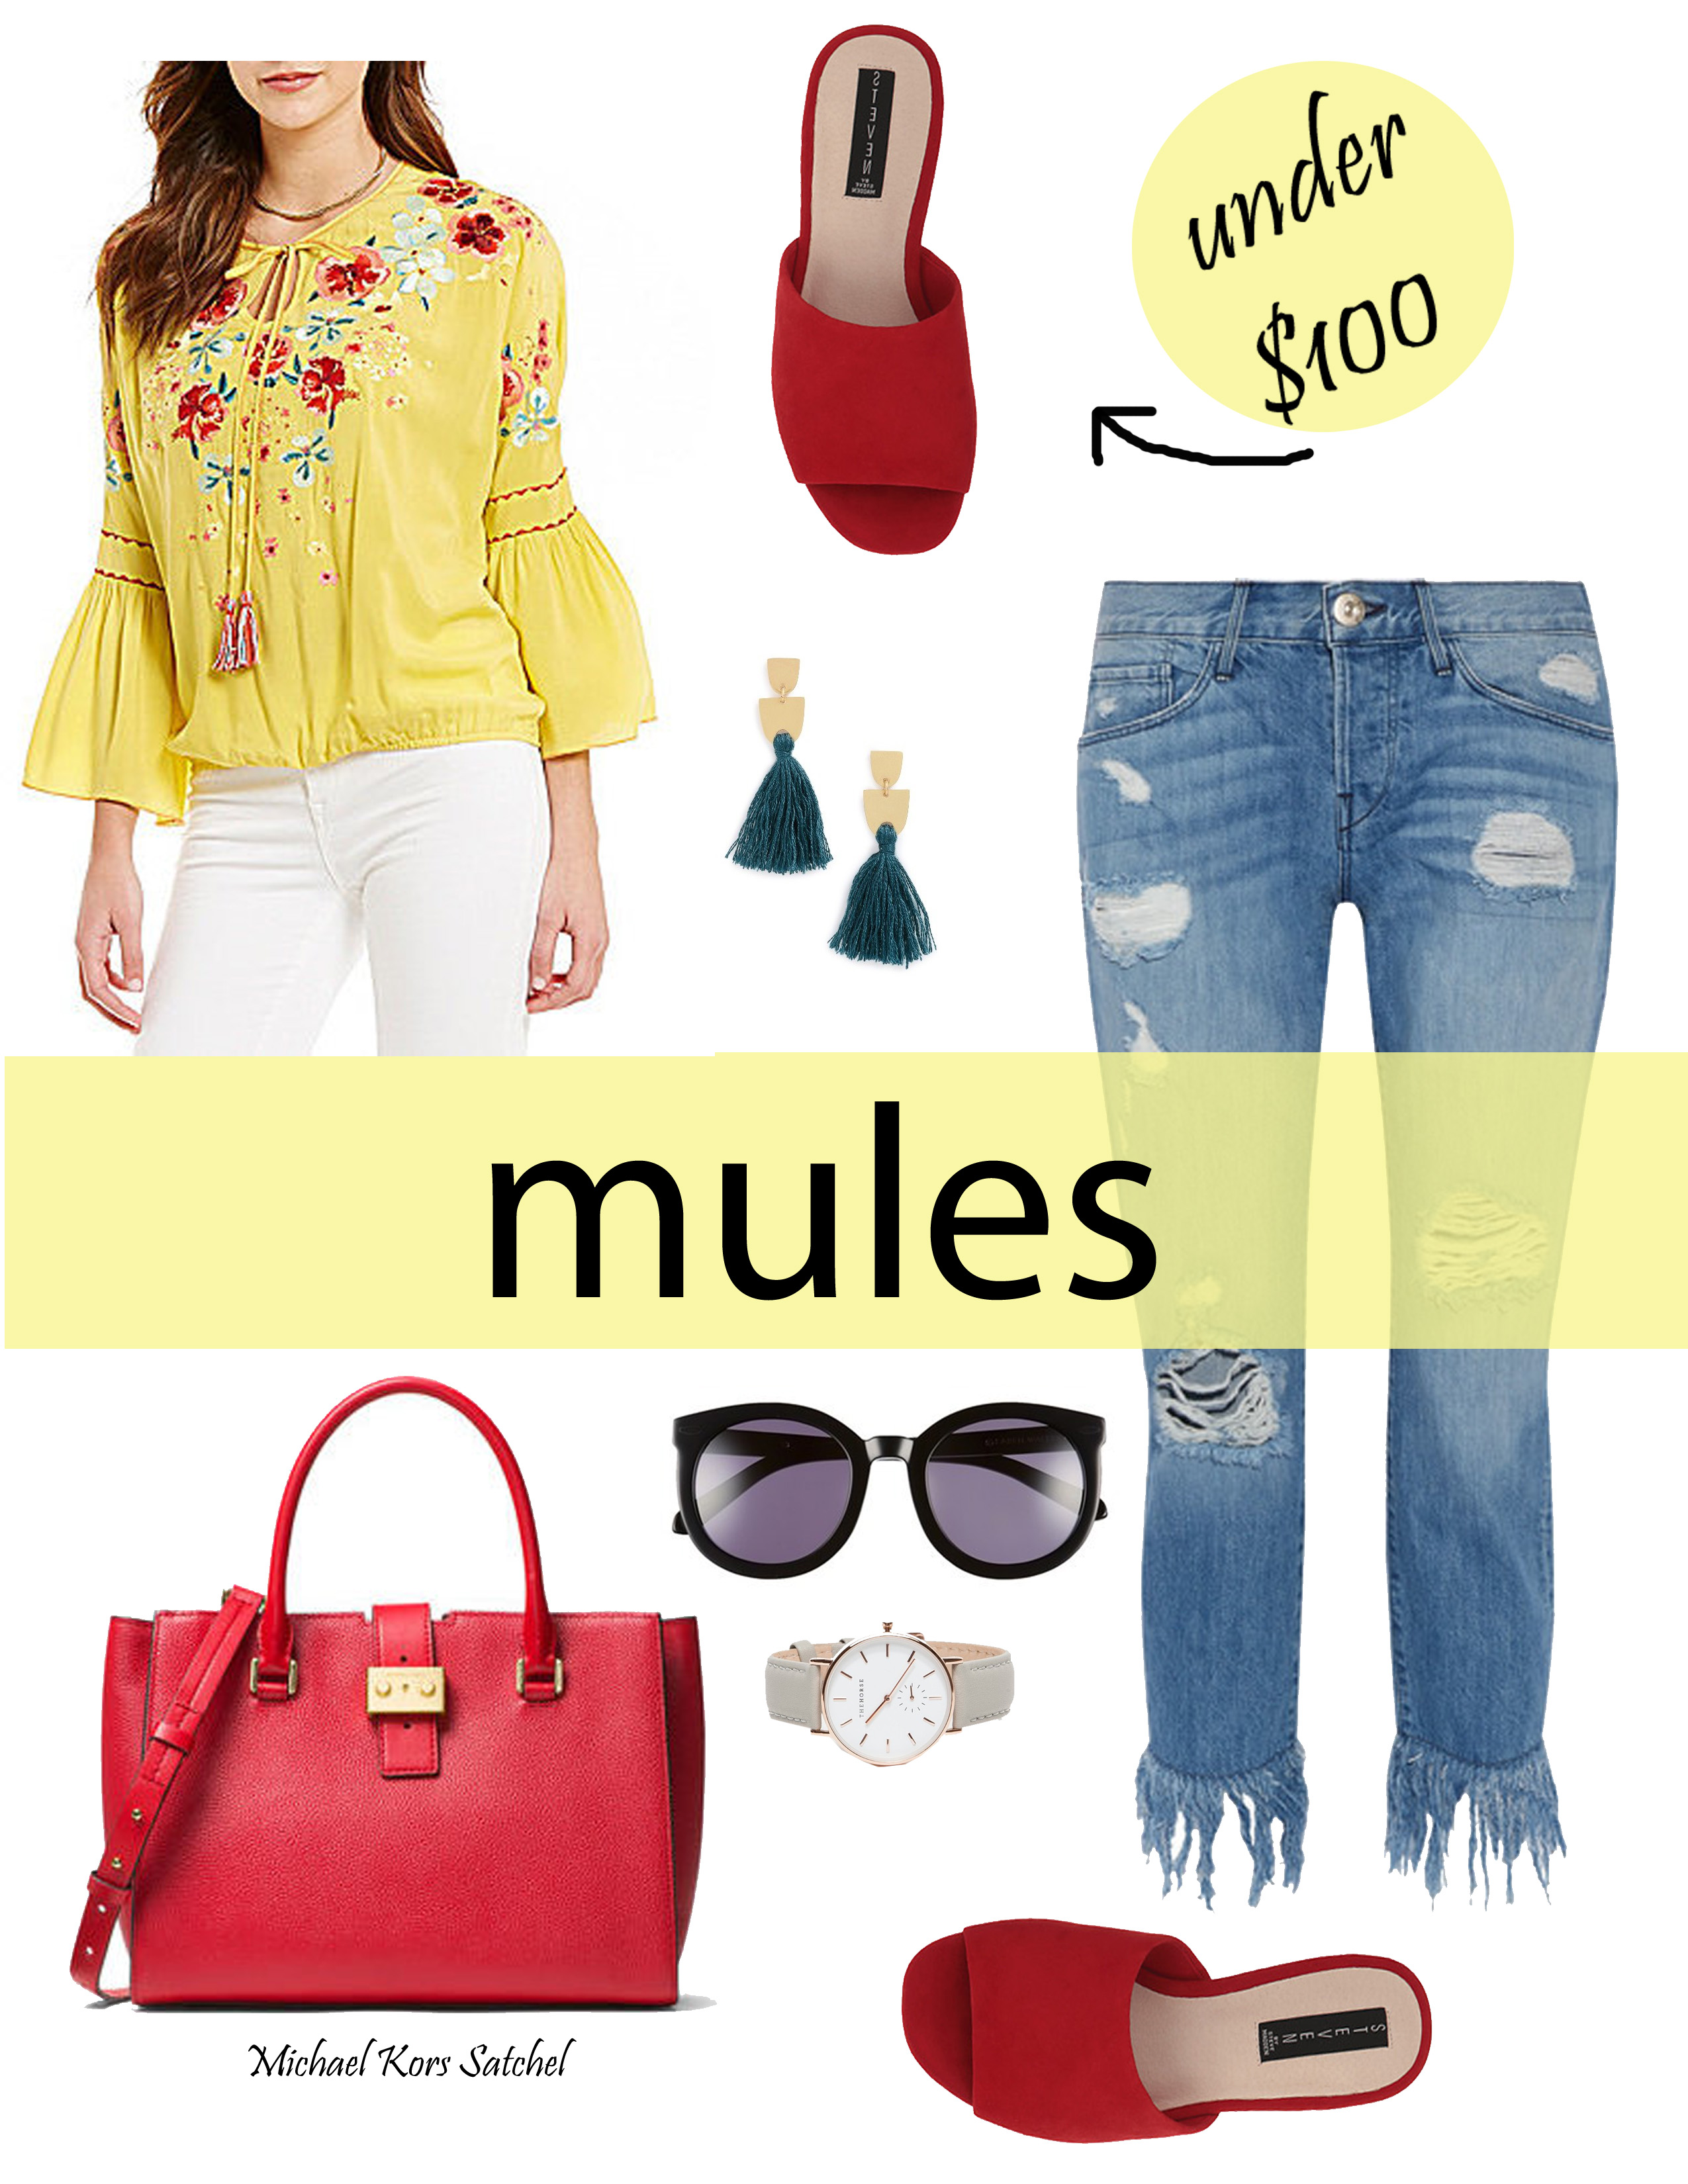 daily finds, steve madden mules, womens shoes, bailylamb